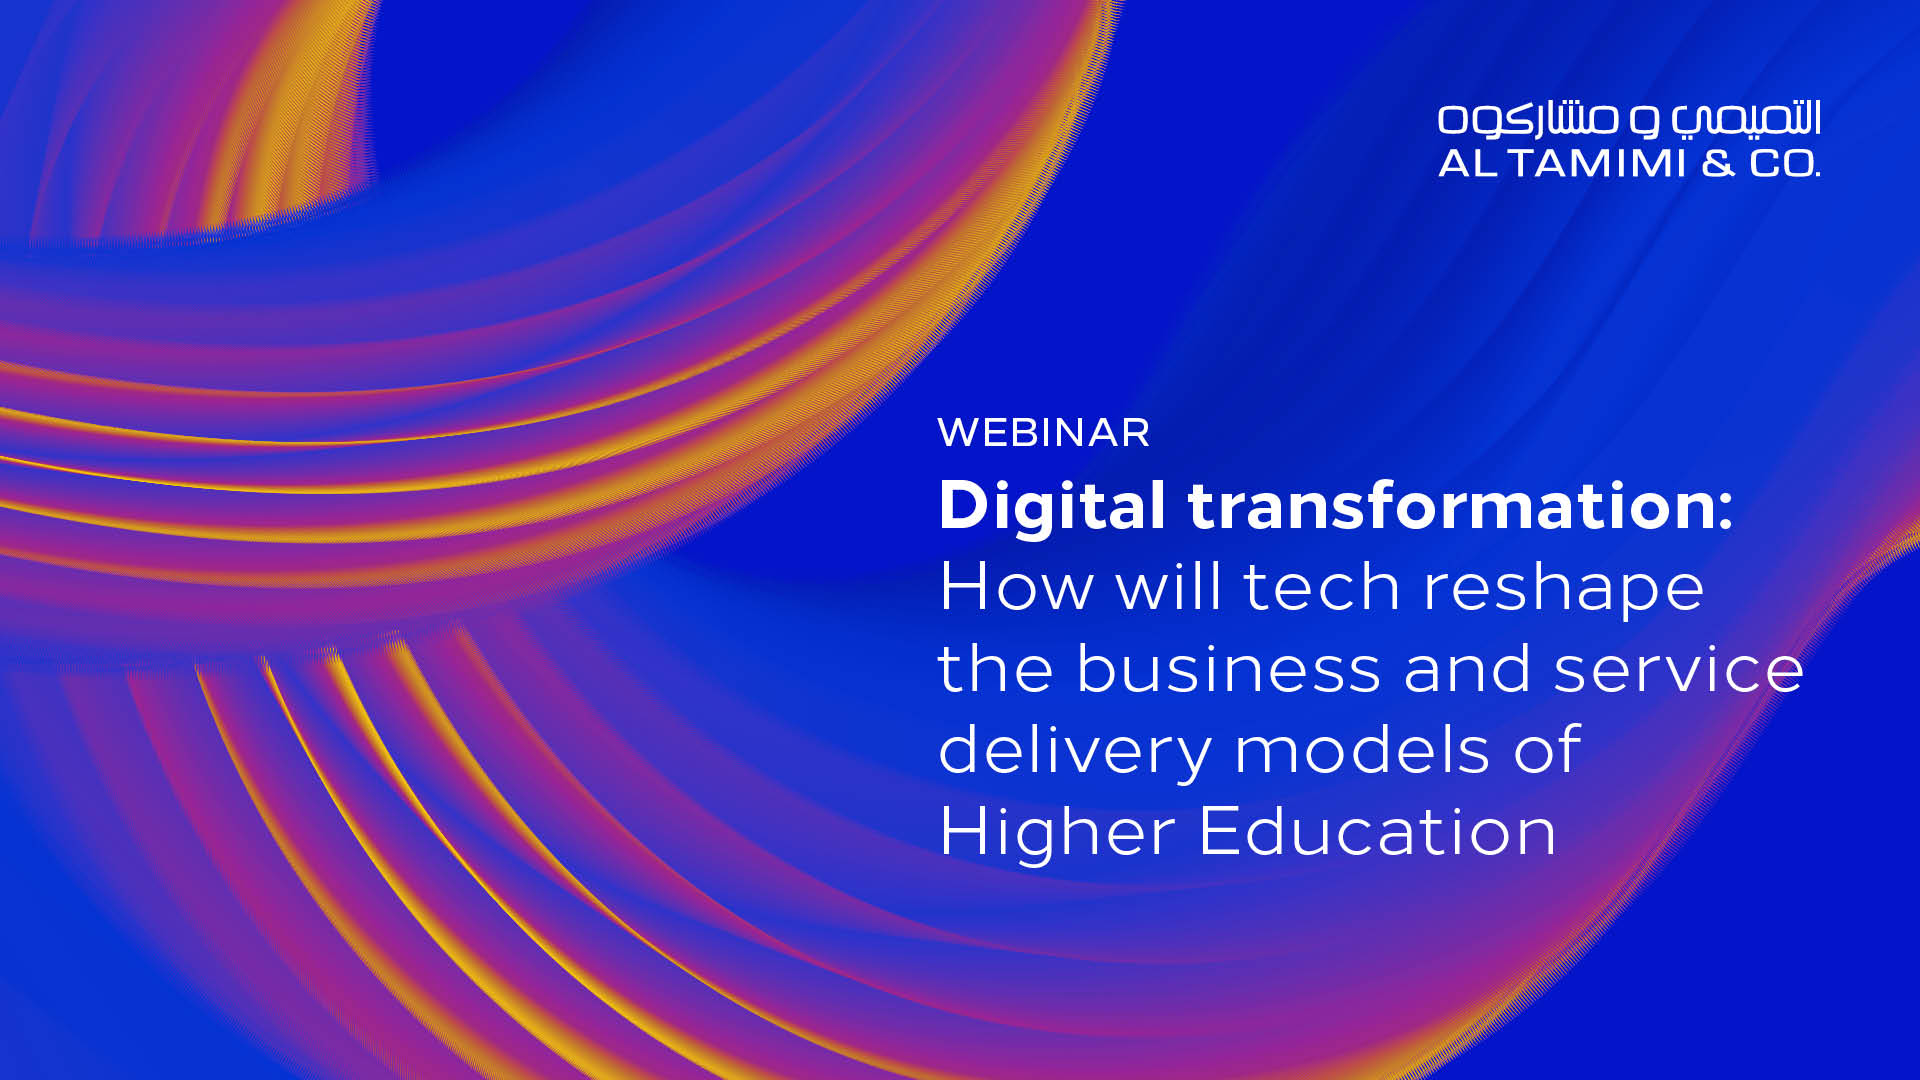 Digital transformation: How will tech reshape the business and service delivery models of Higher Education